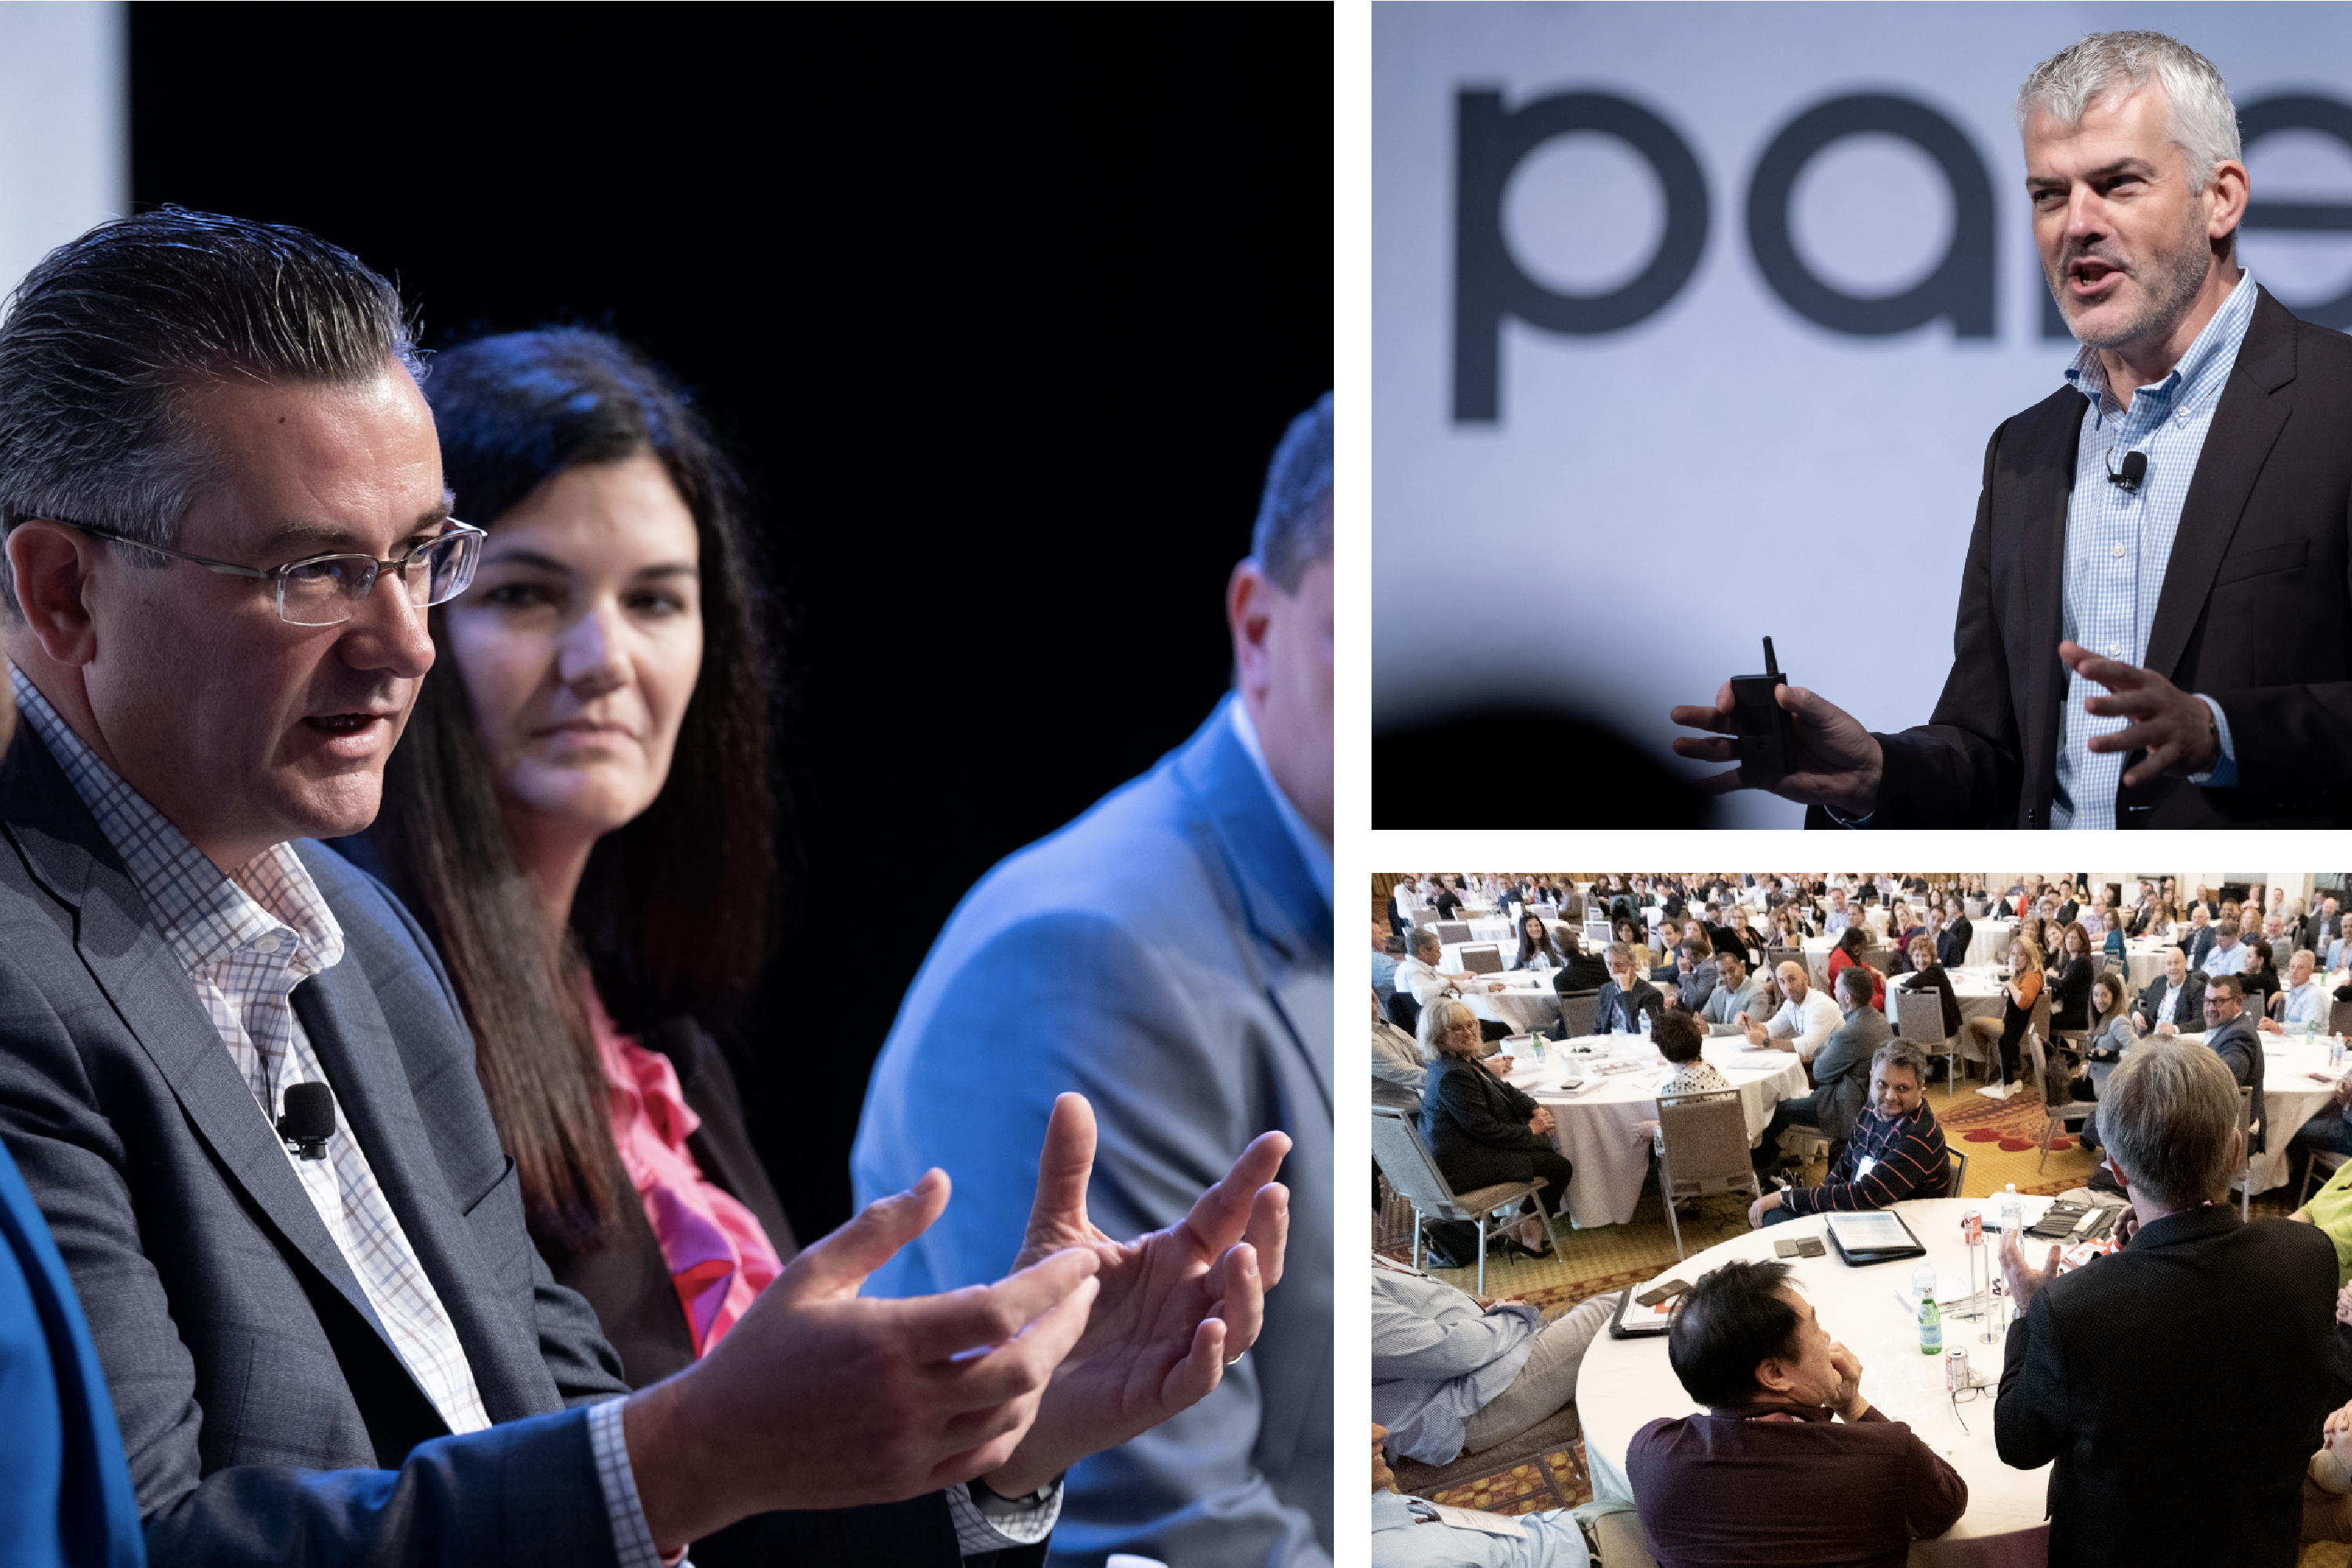 Parexel Global Leadership and Sales Summit Event Attendees and Speakers